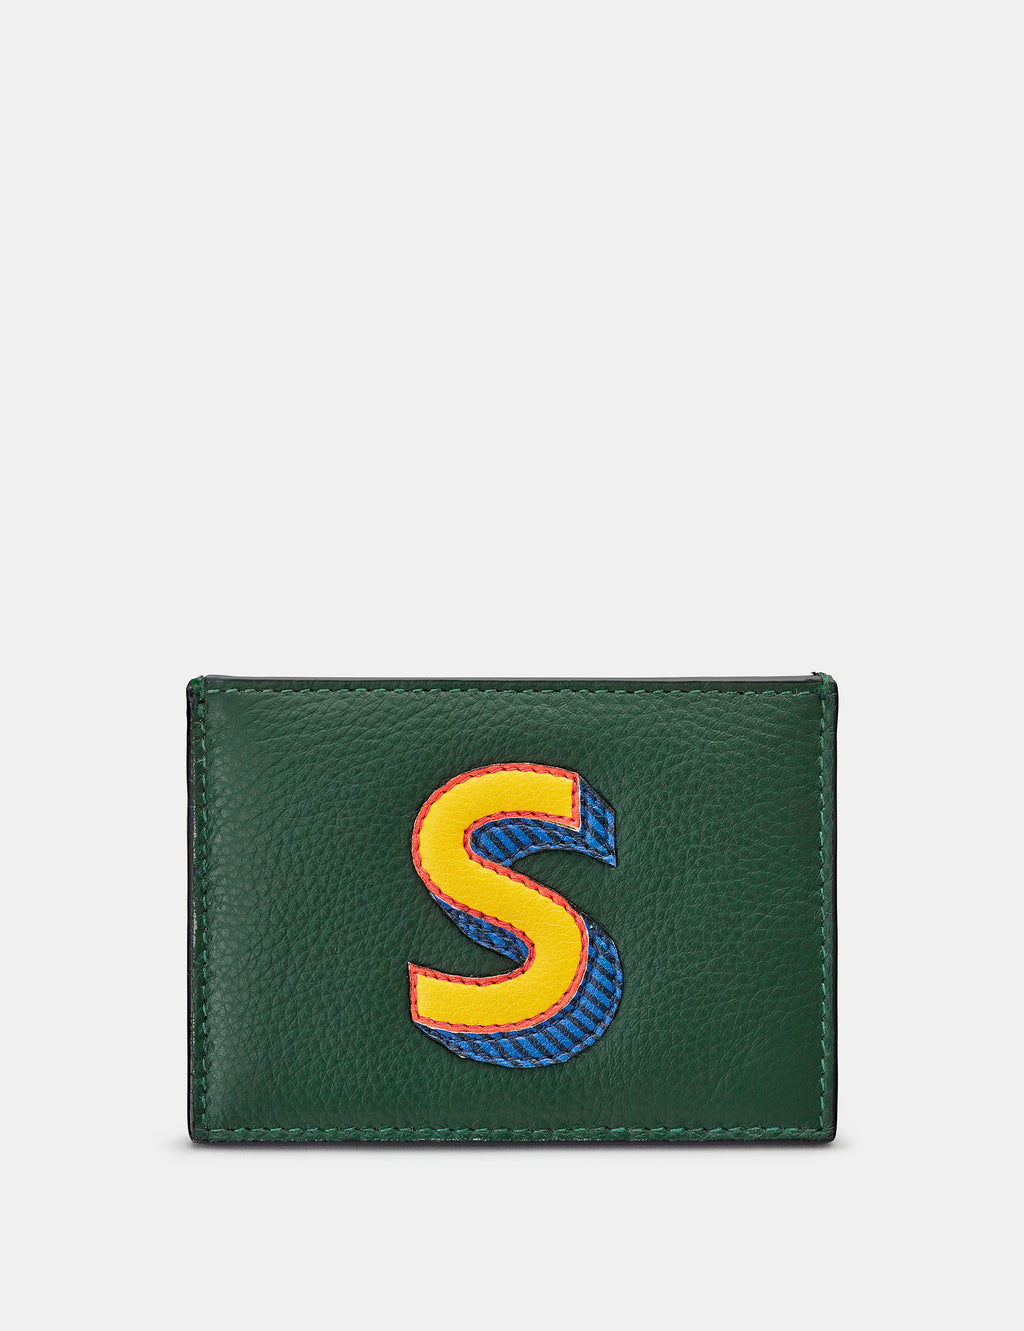 S Initial Green Leather Card Holder